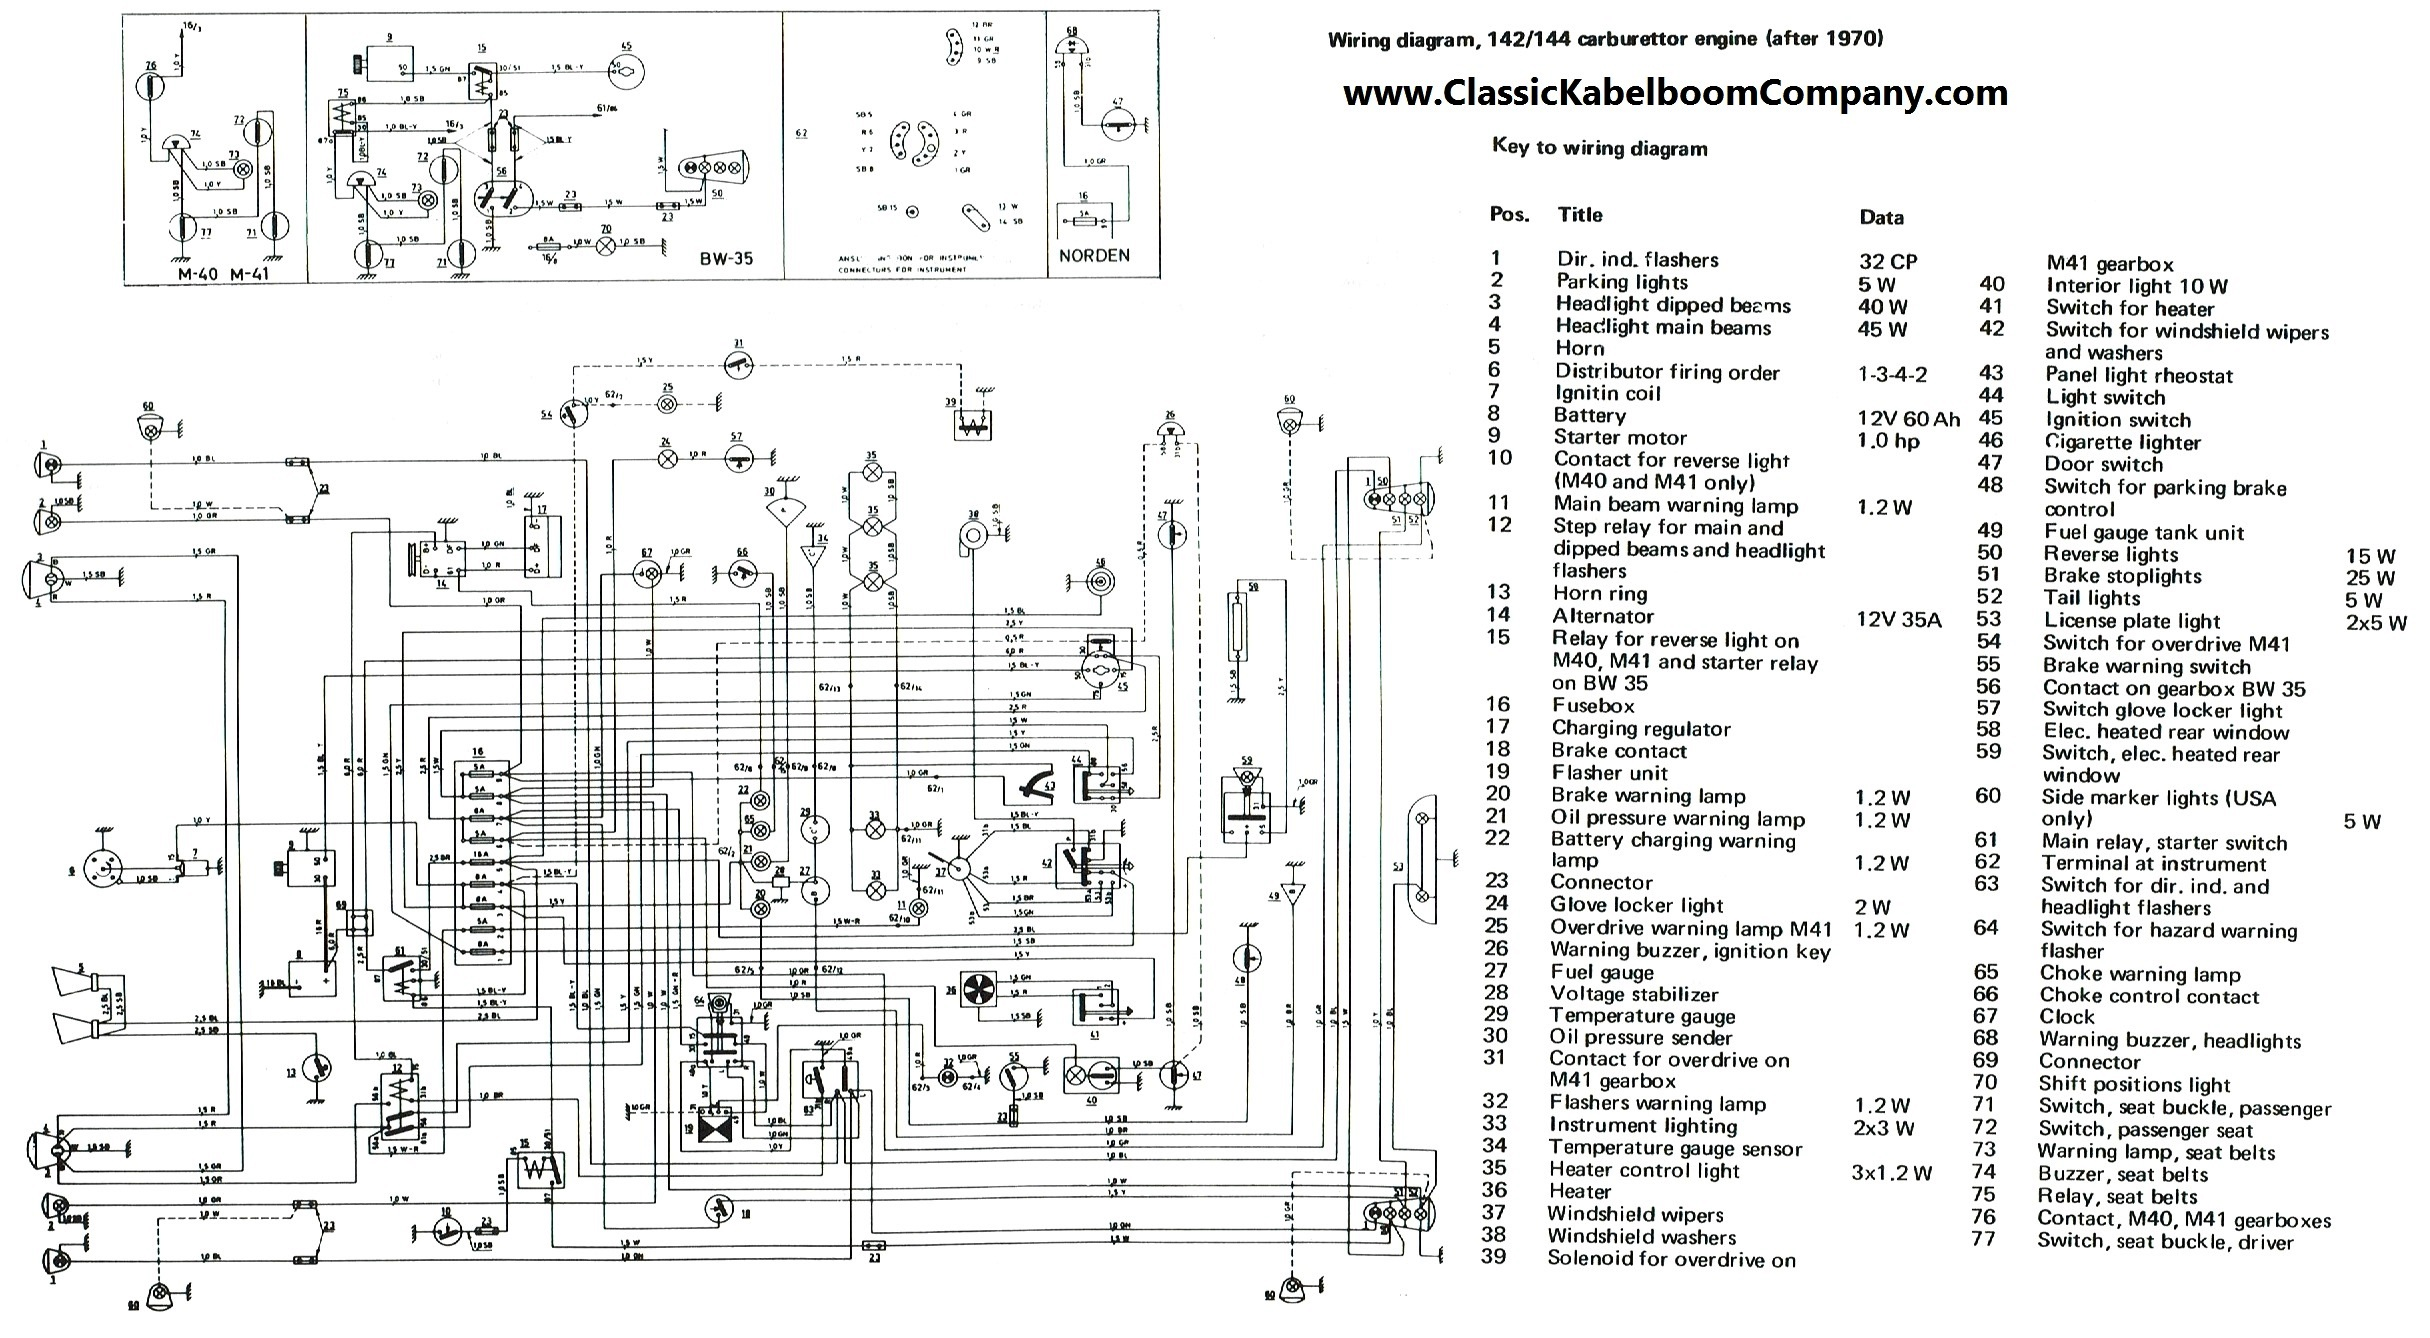 Classic Kabelboom Company Elektrisch Bedrading Schema Volvo A C Wiring Diagram 140 142 144 1971 1972 1973 Electrical